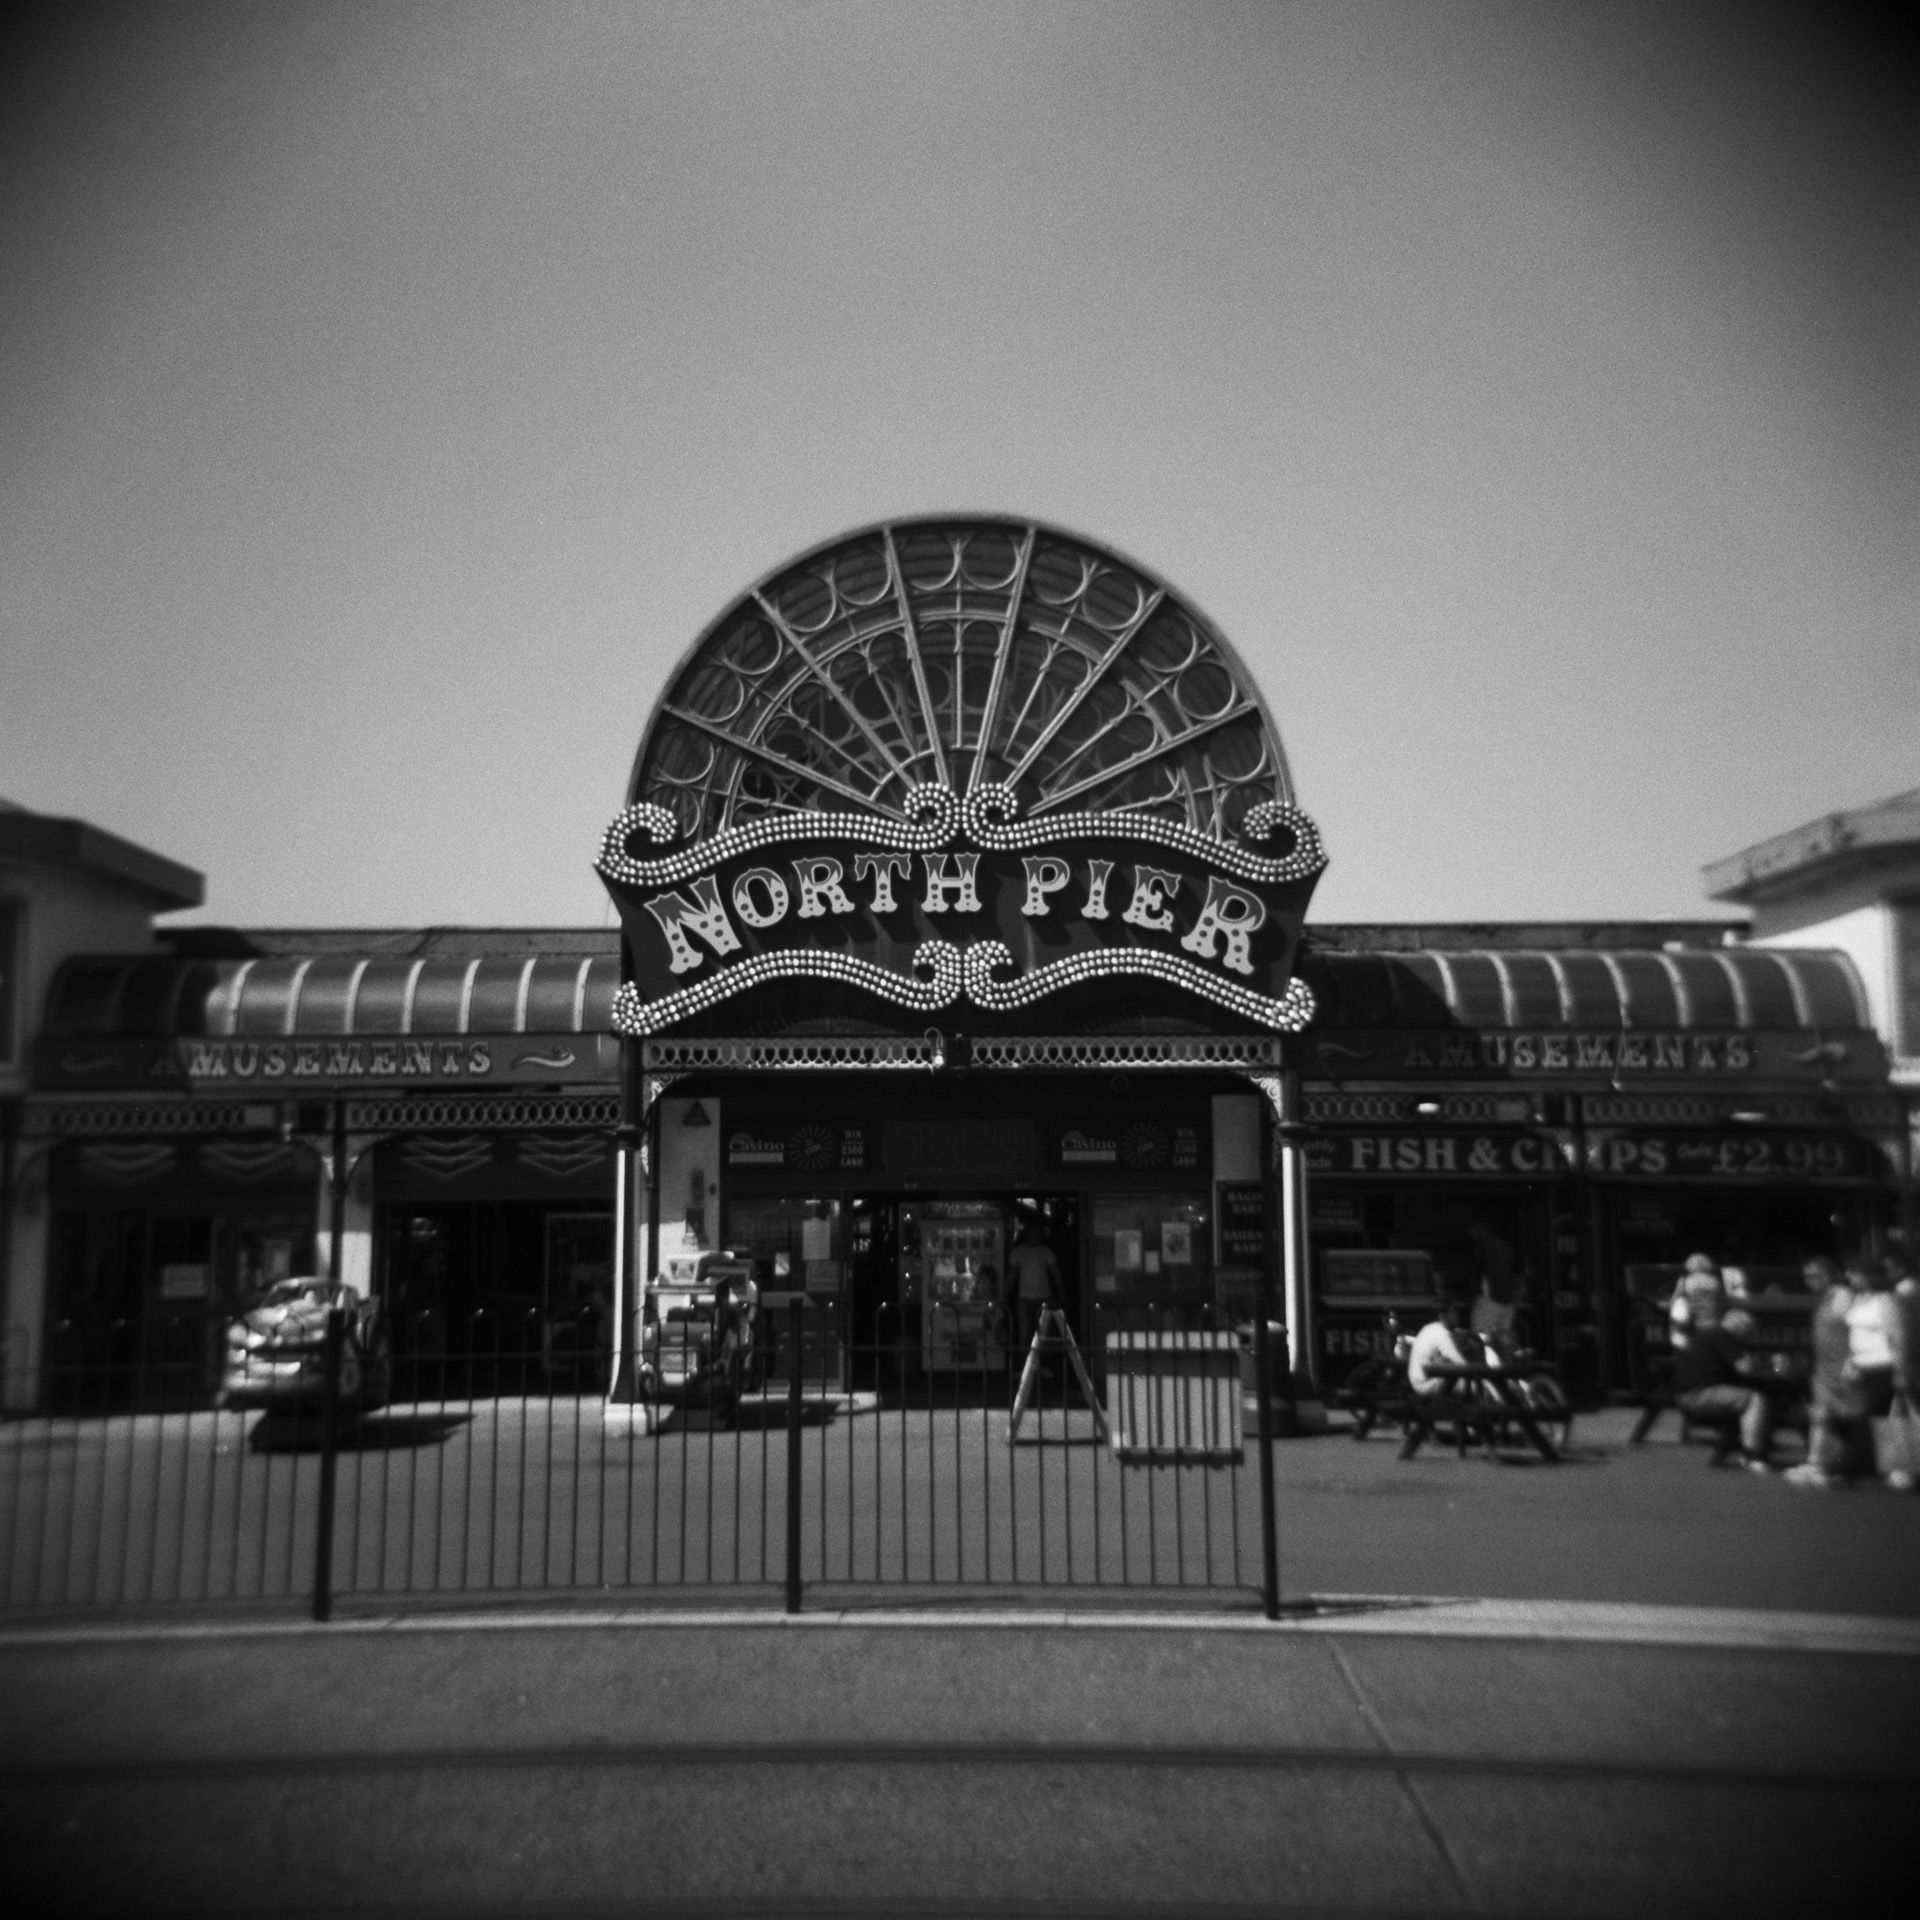 The same as above but photographed with my Holga film camera.